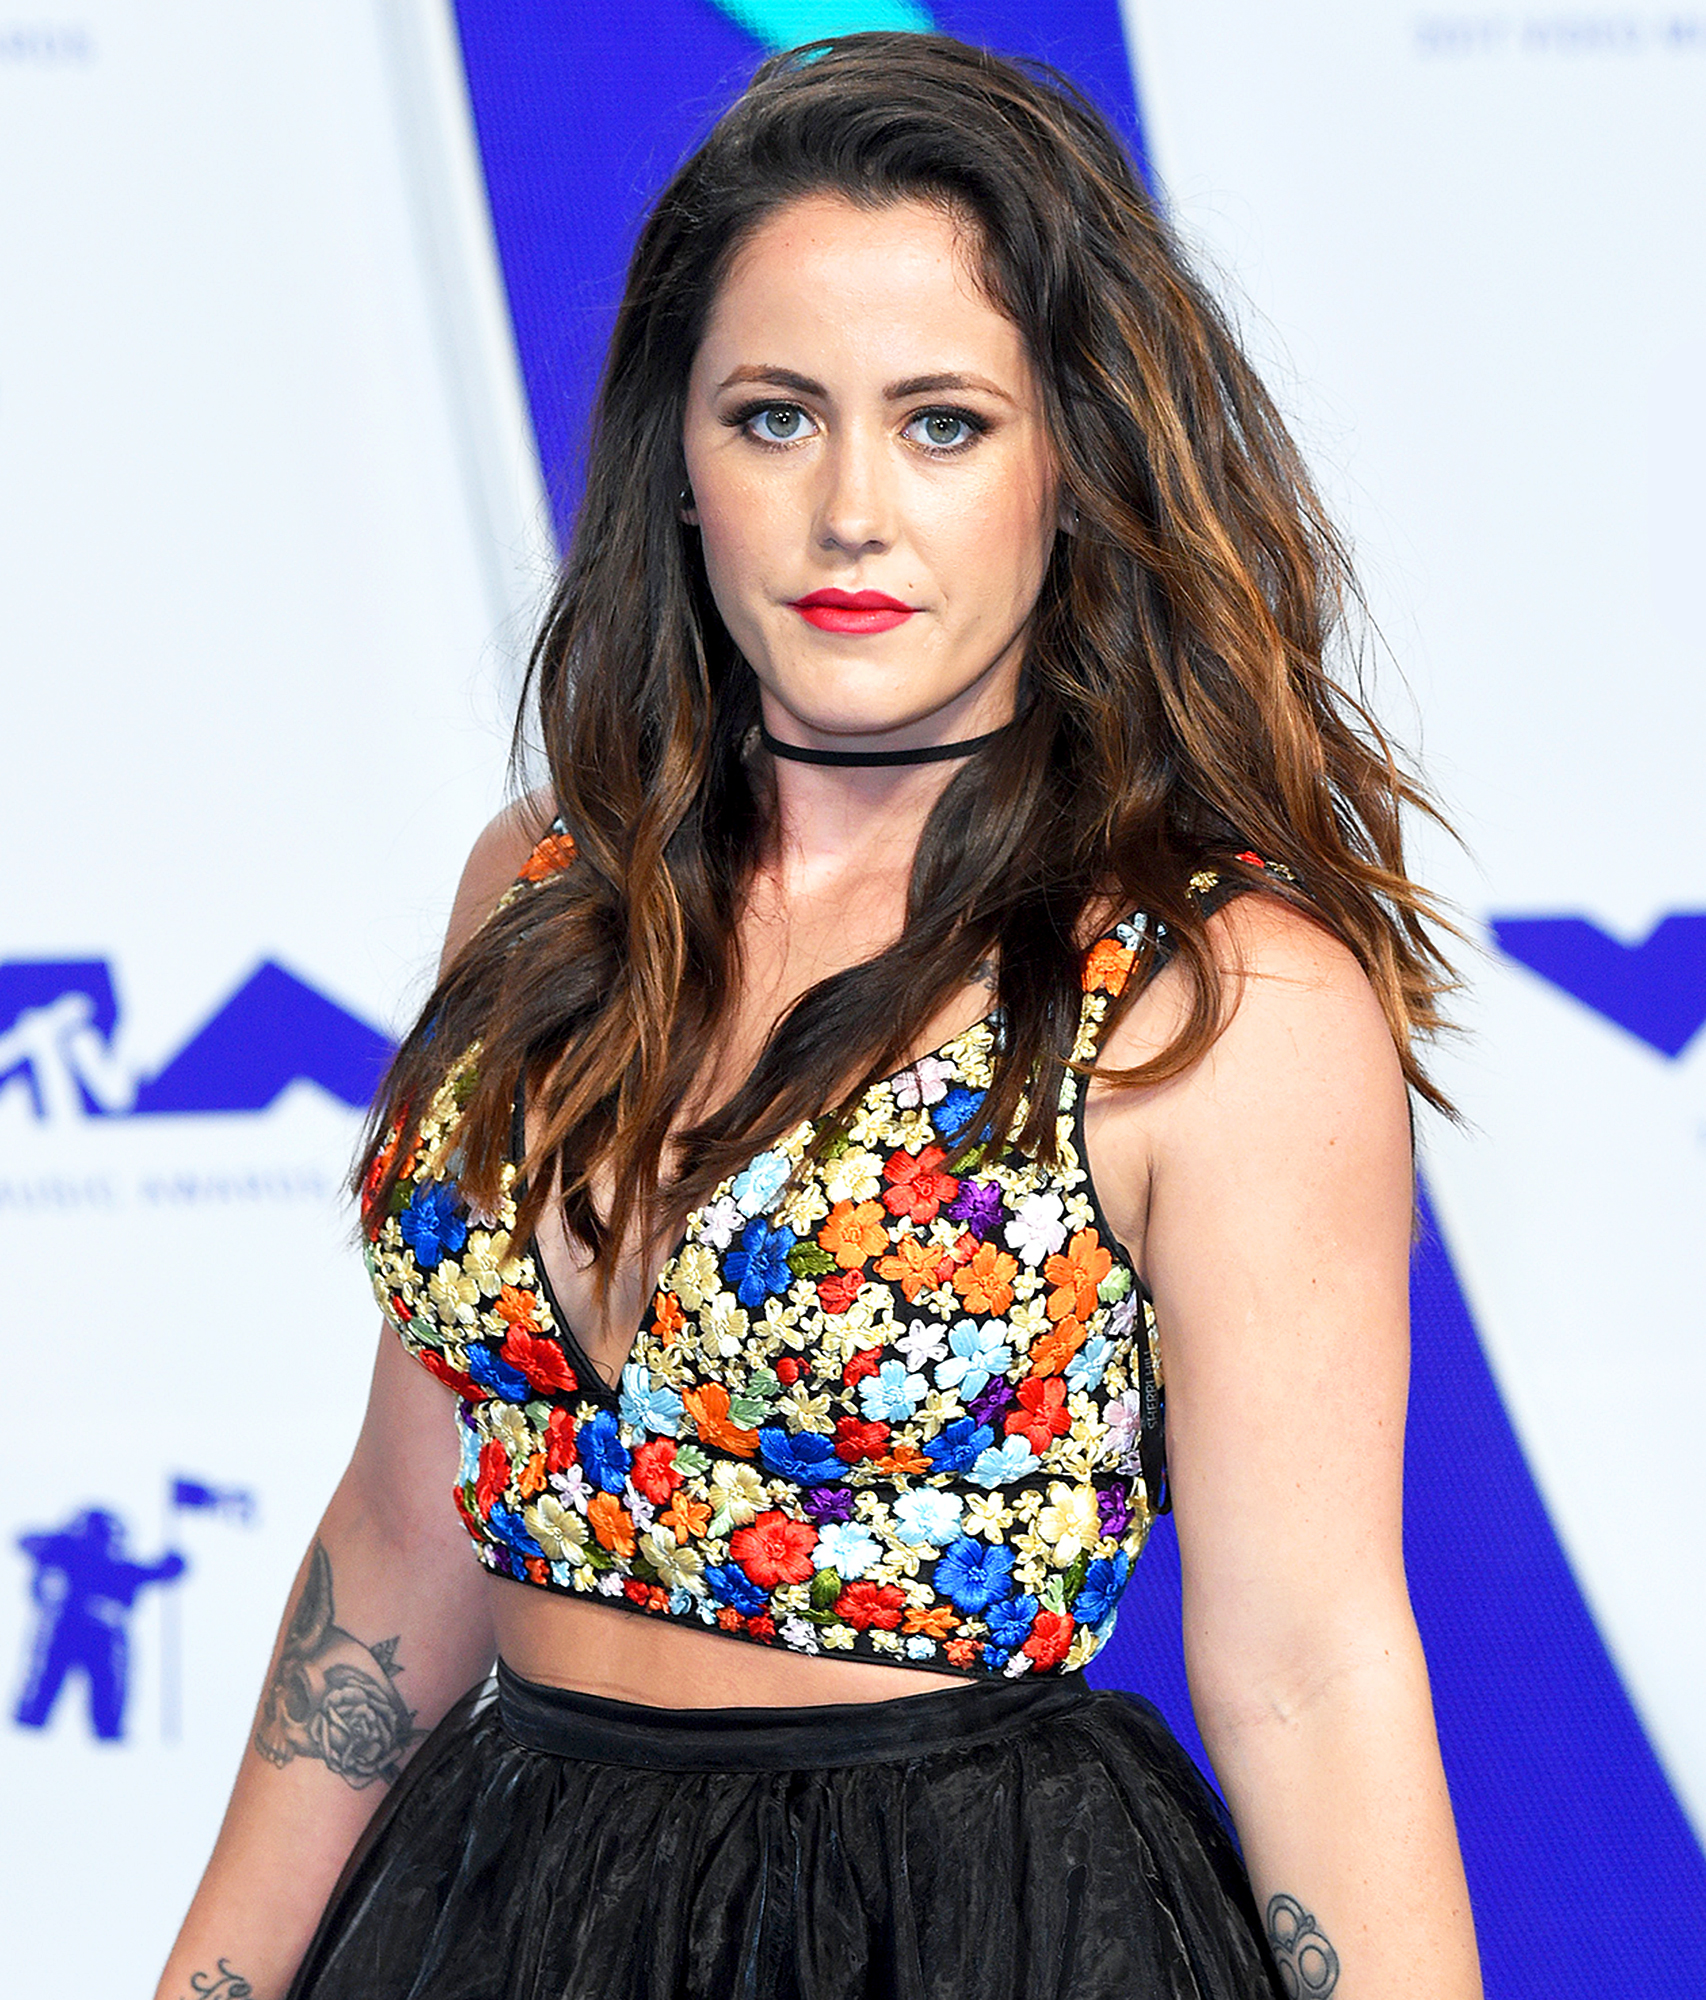 Jenelle Evans Admits She Used Drugs While Pregnant With Daughter Ensley